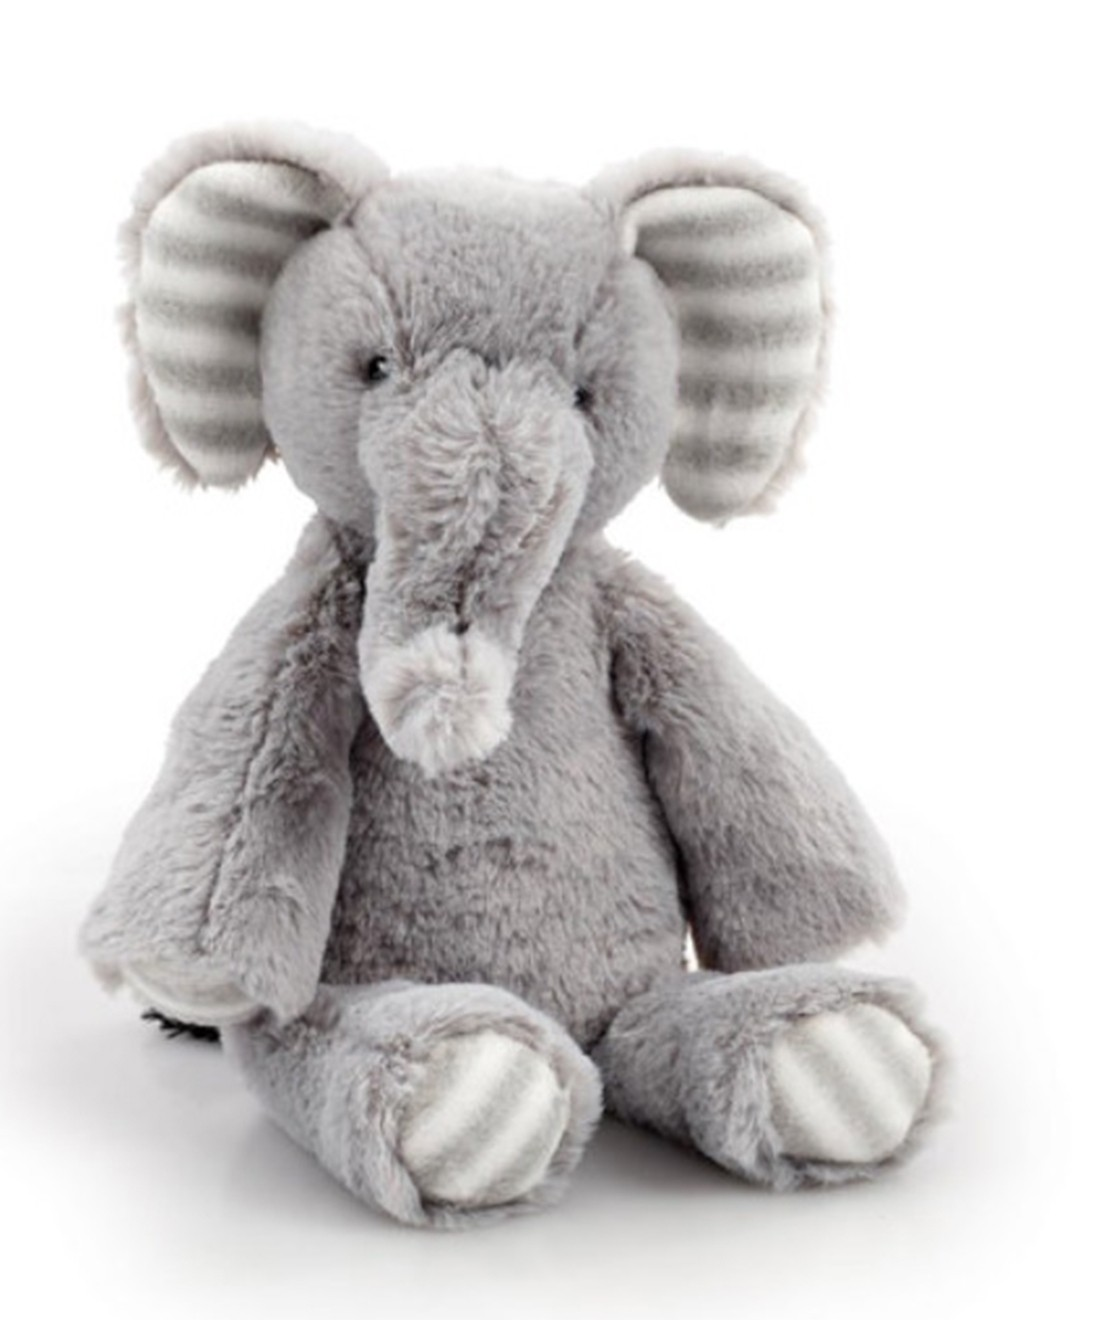 Early Learning Centre Plush Toy - Elephant